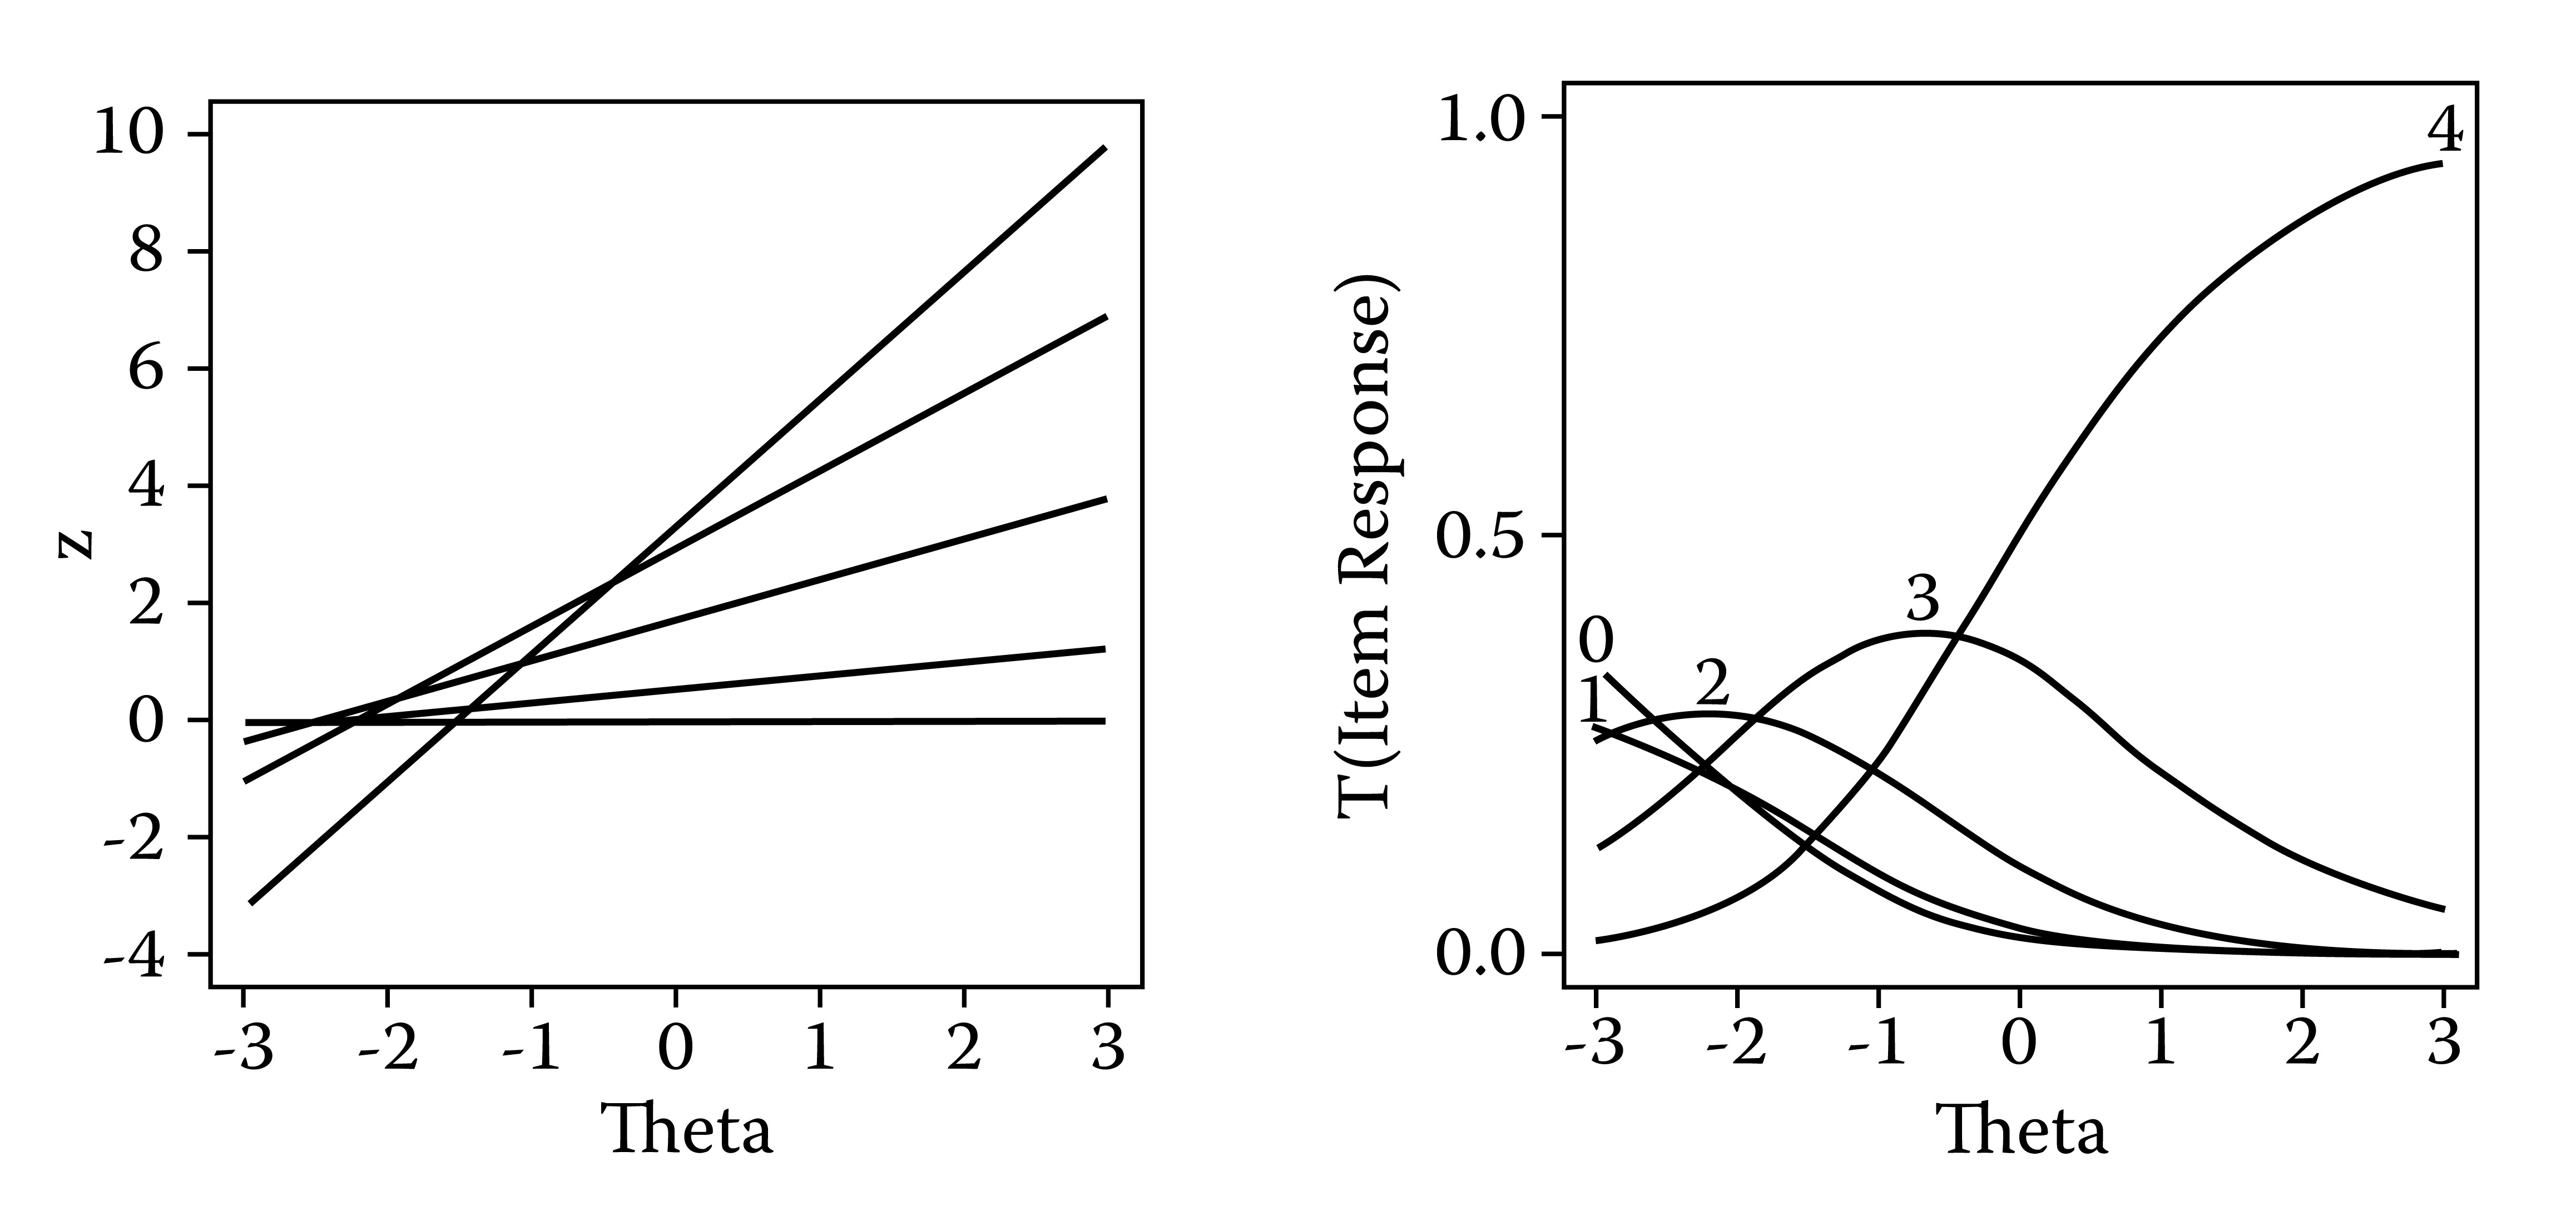 Left panel: Linear regressions of the response process